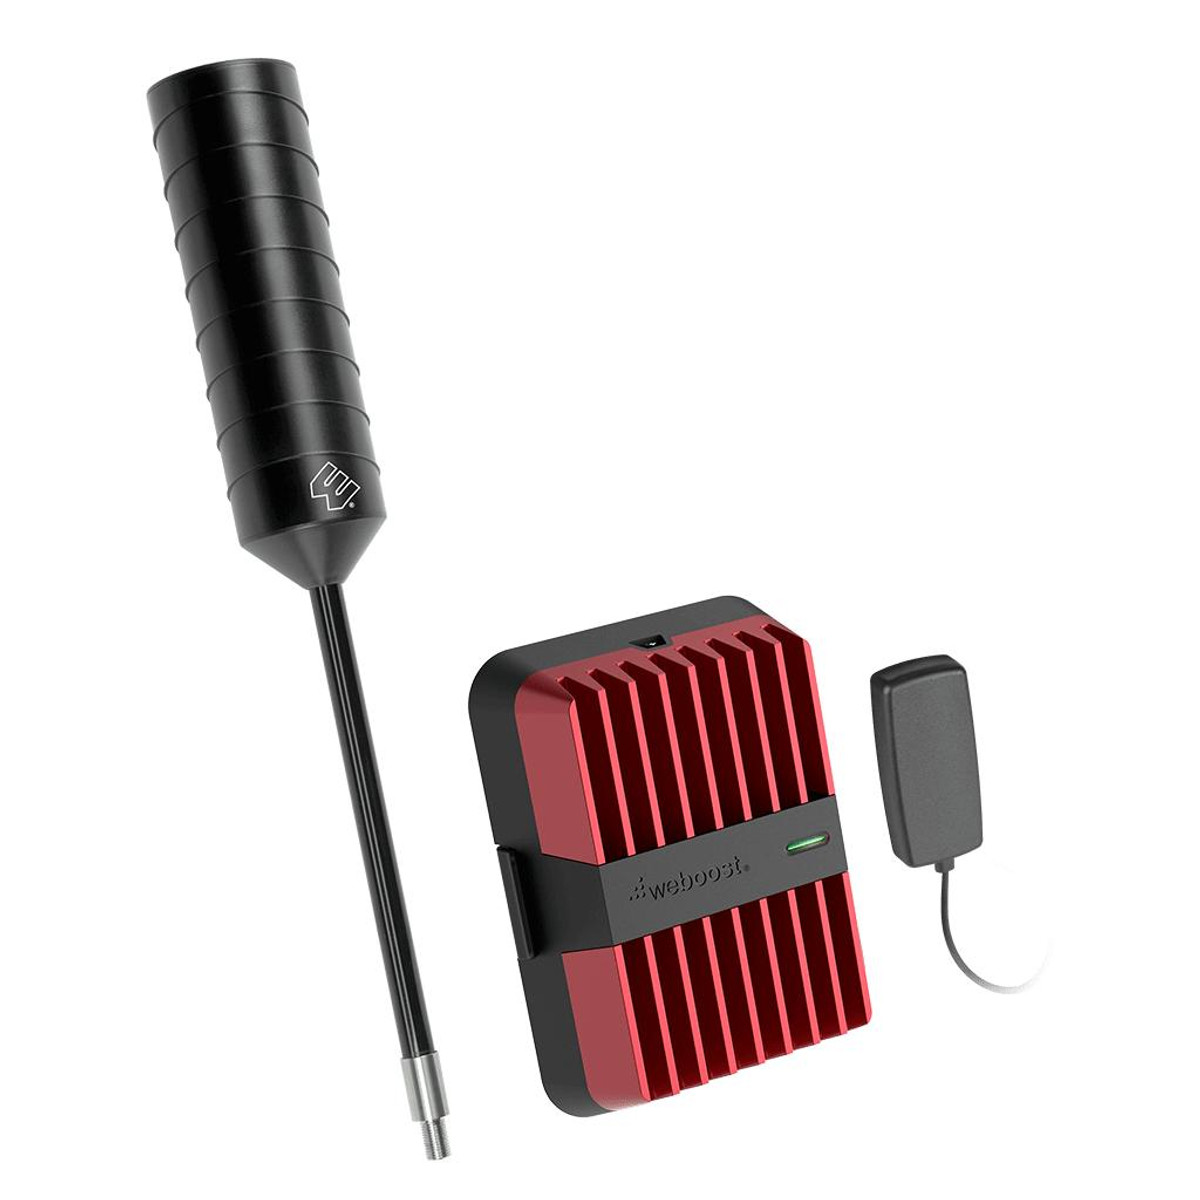 weBoost weBoost Drive Reach OTR Cell Phone Booster Kit for Fleet Vehicle or 471254